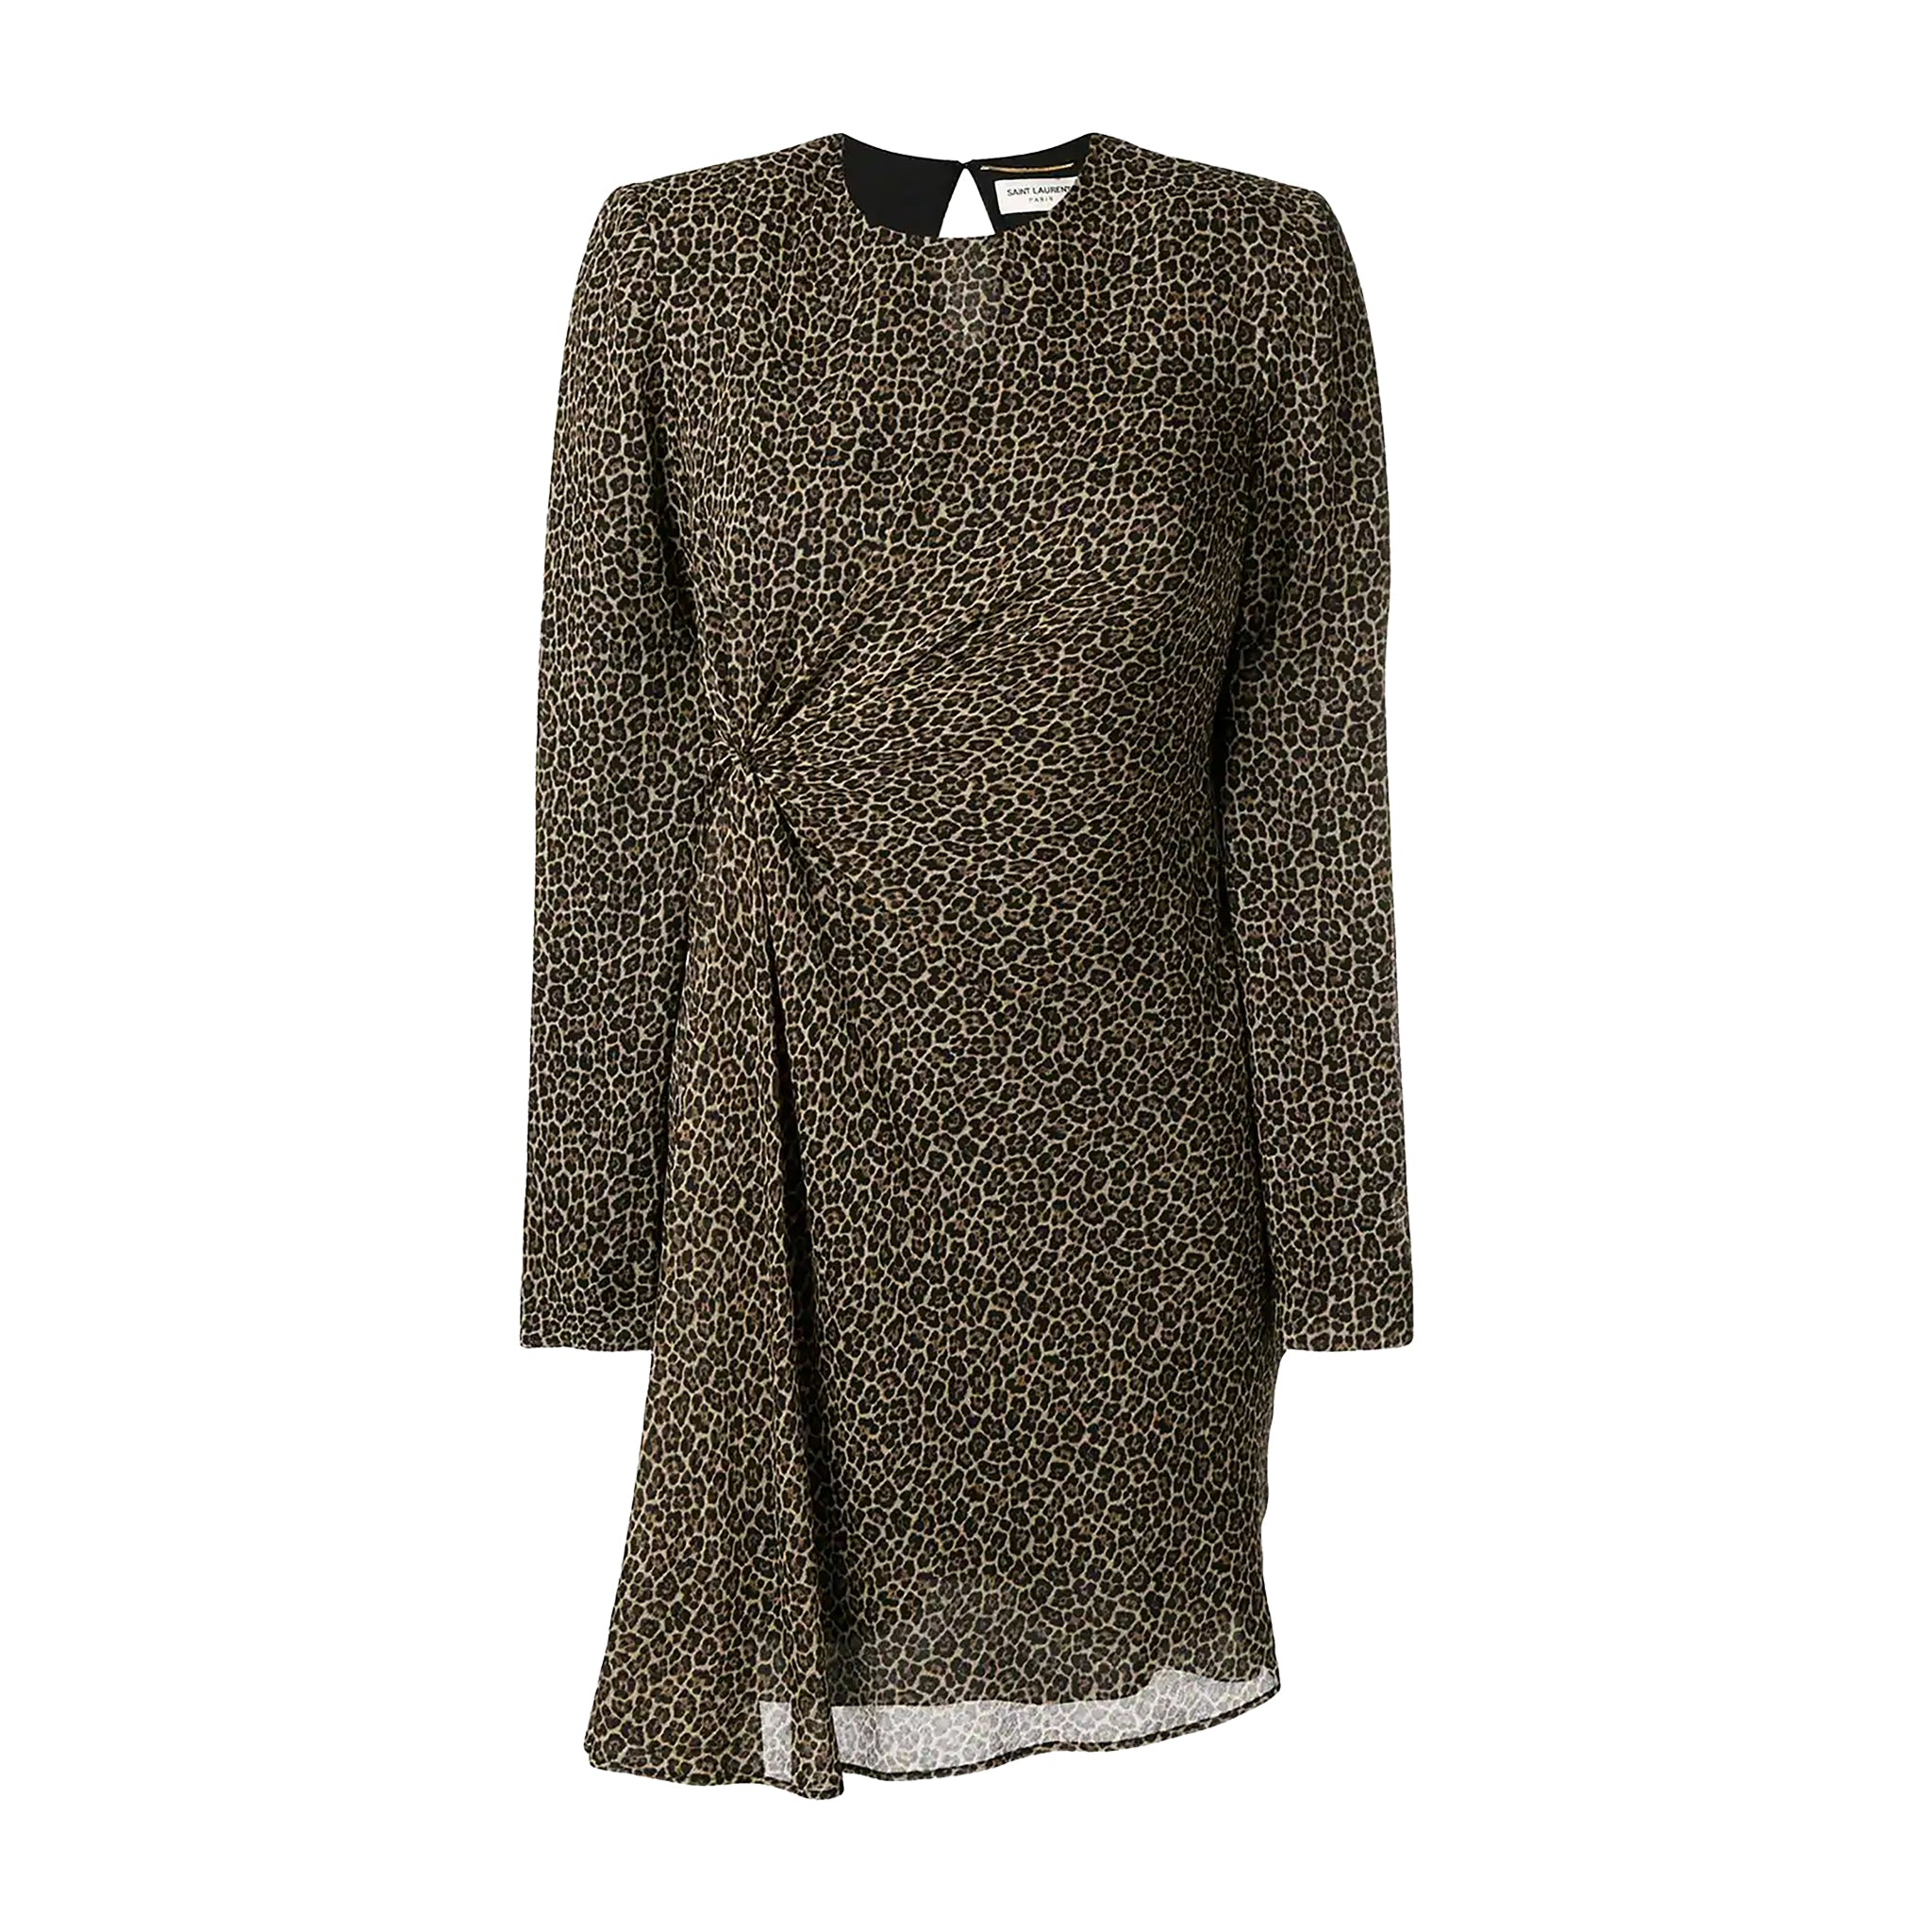 Yves Saint Laurent Leopard Print Ruched Dress